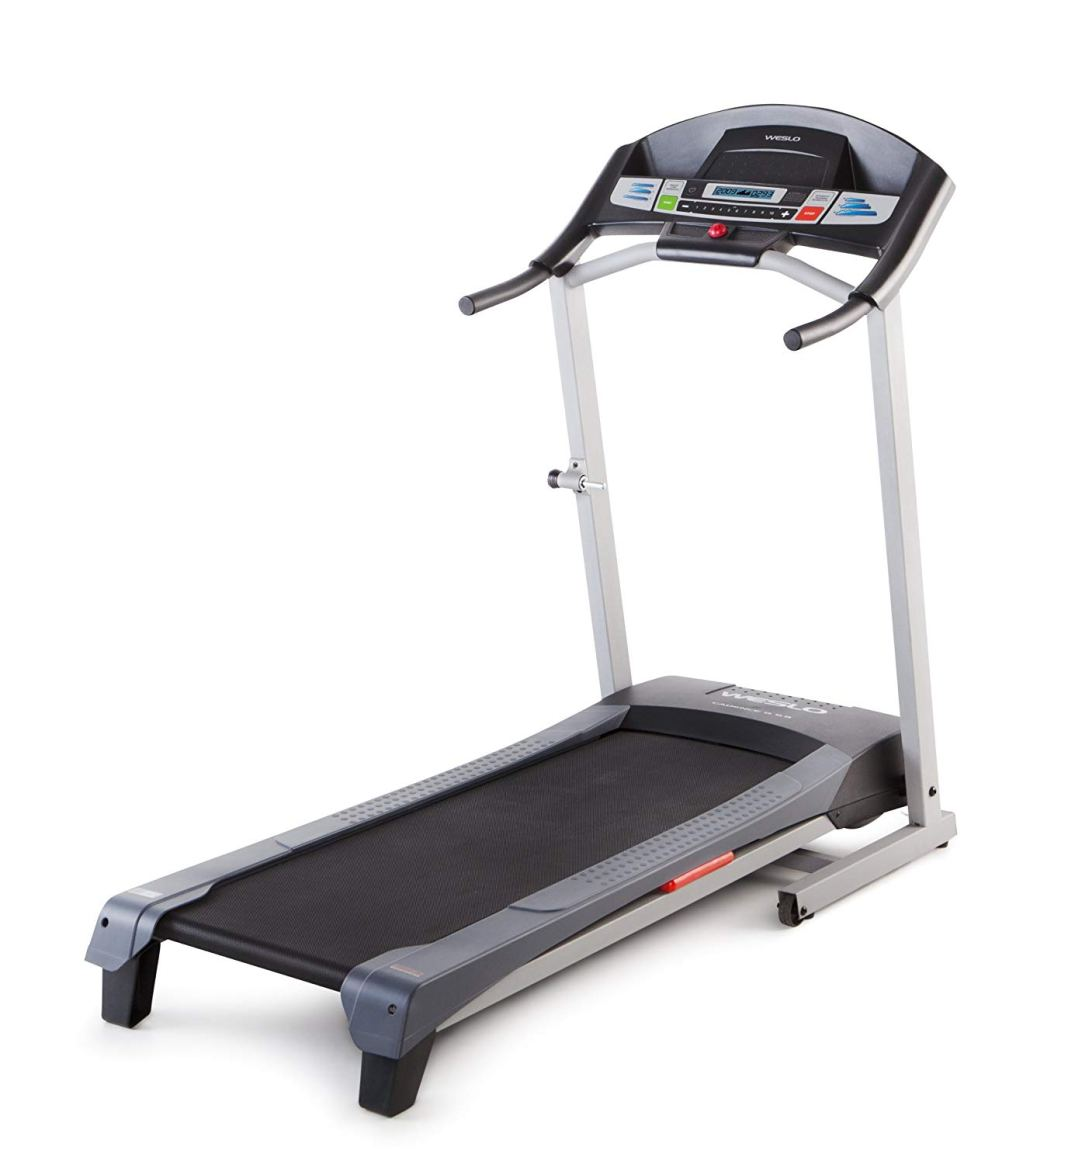 Weslo Ccadence 5.9 Treadmill Review